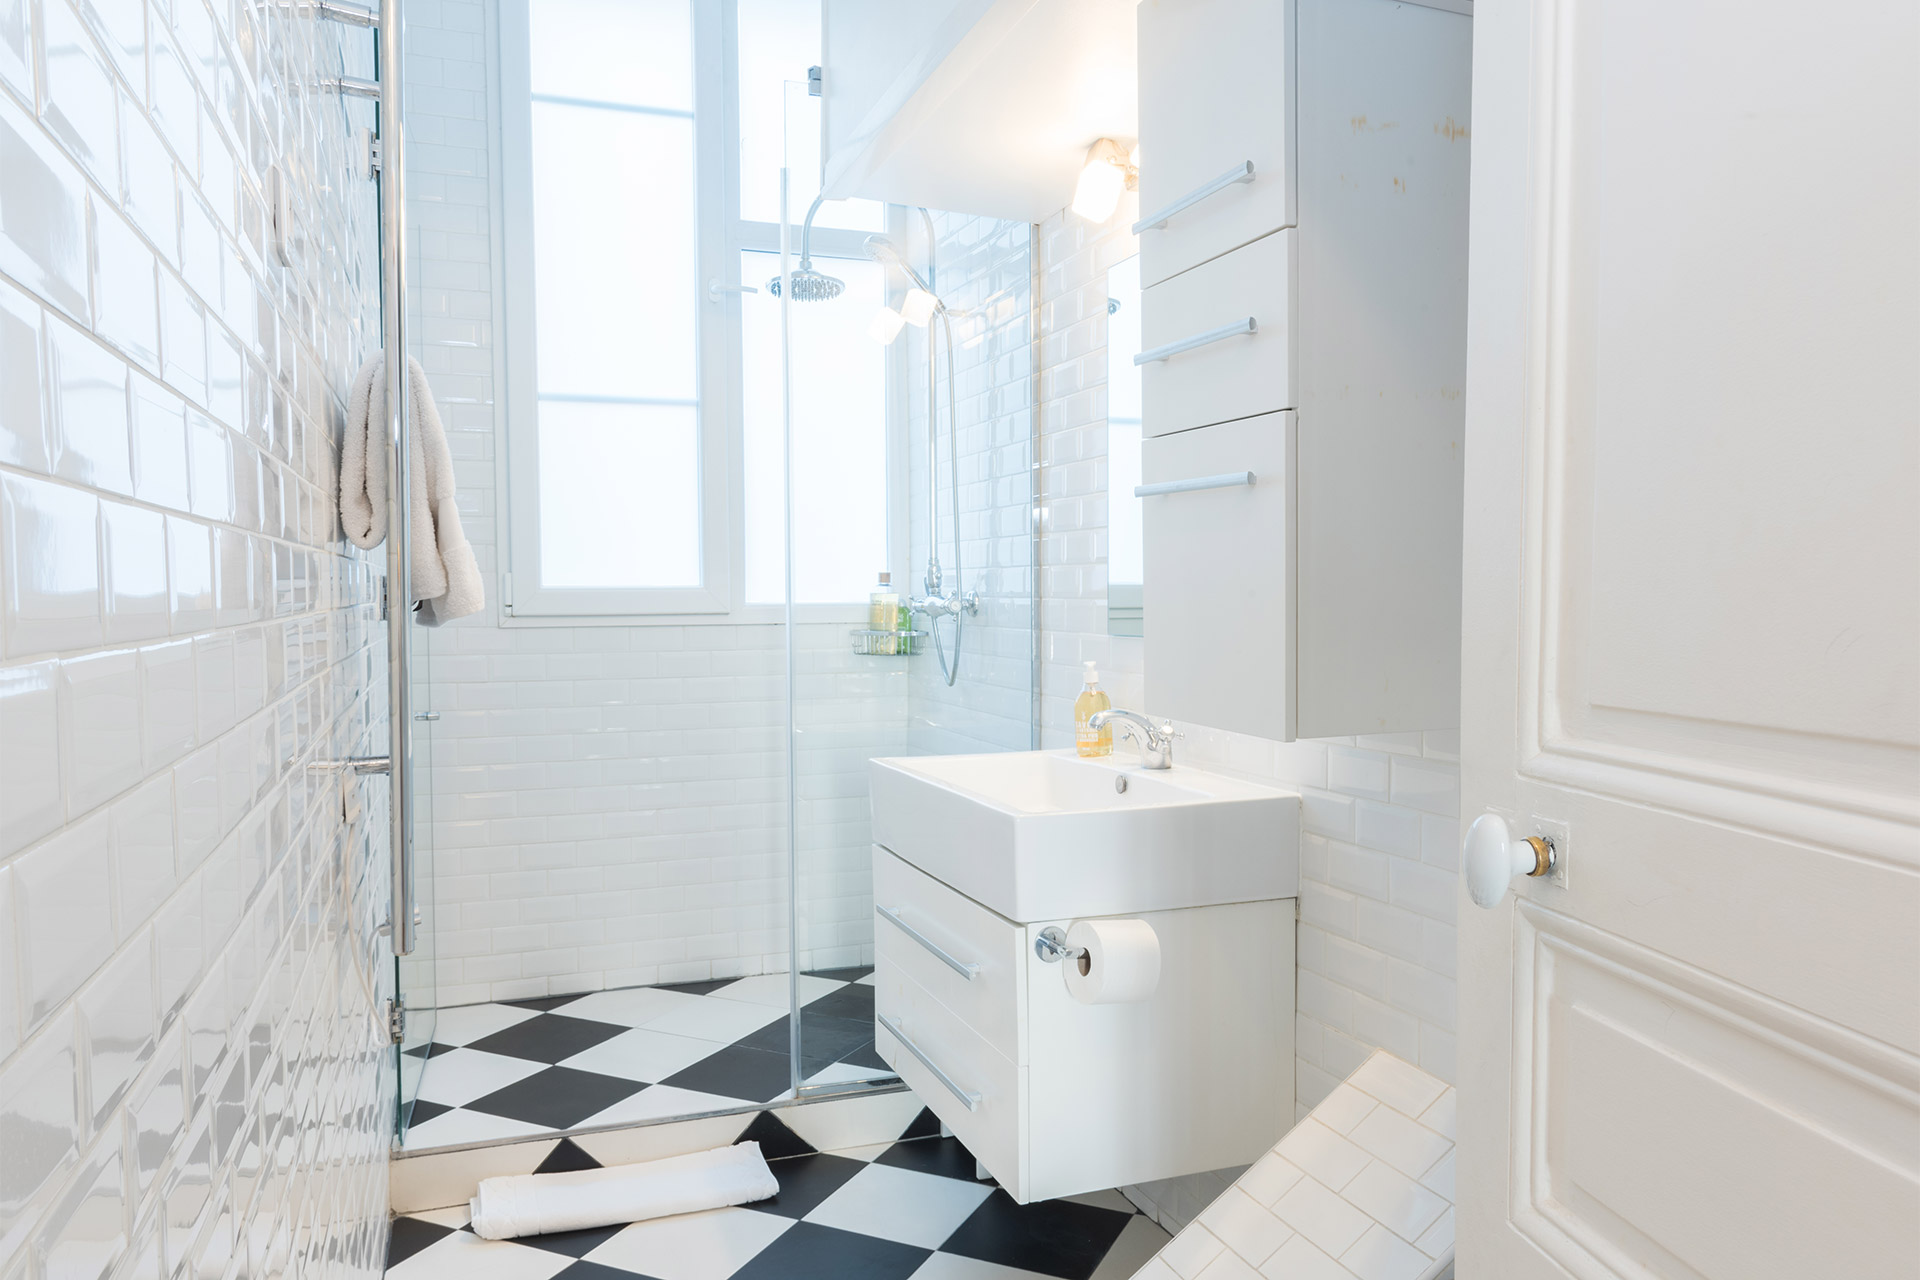 Black and white bathroom in the Maubert vacation rental offered by Paris Perfect